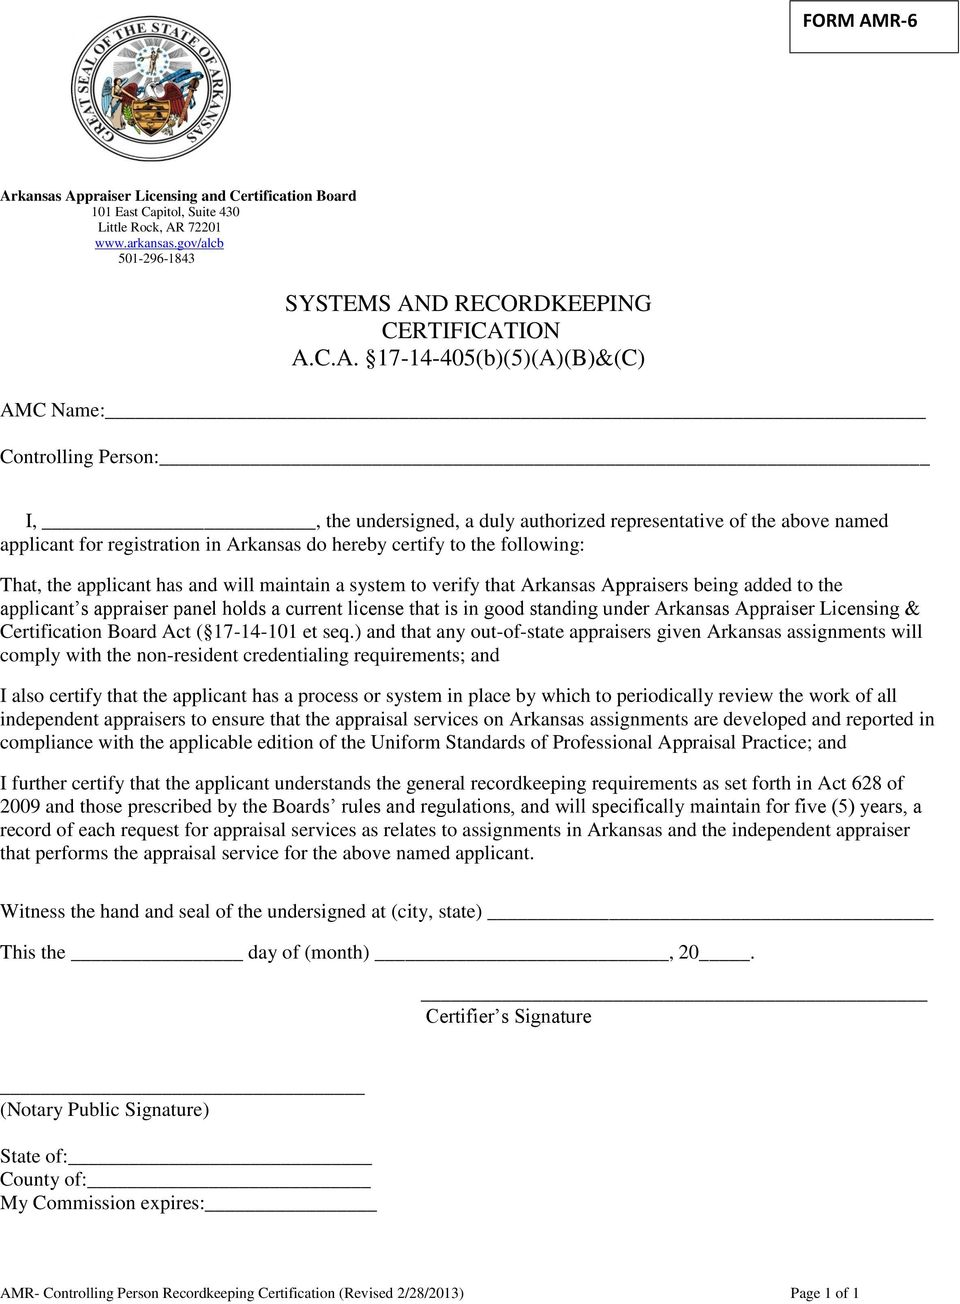 maintain a system to verify that Arkansas Appraisers being added to the applicant s appraiser panel holds a current license that is in good standing under Arkansas Appraiser Licensing & Certification